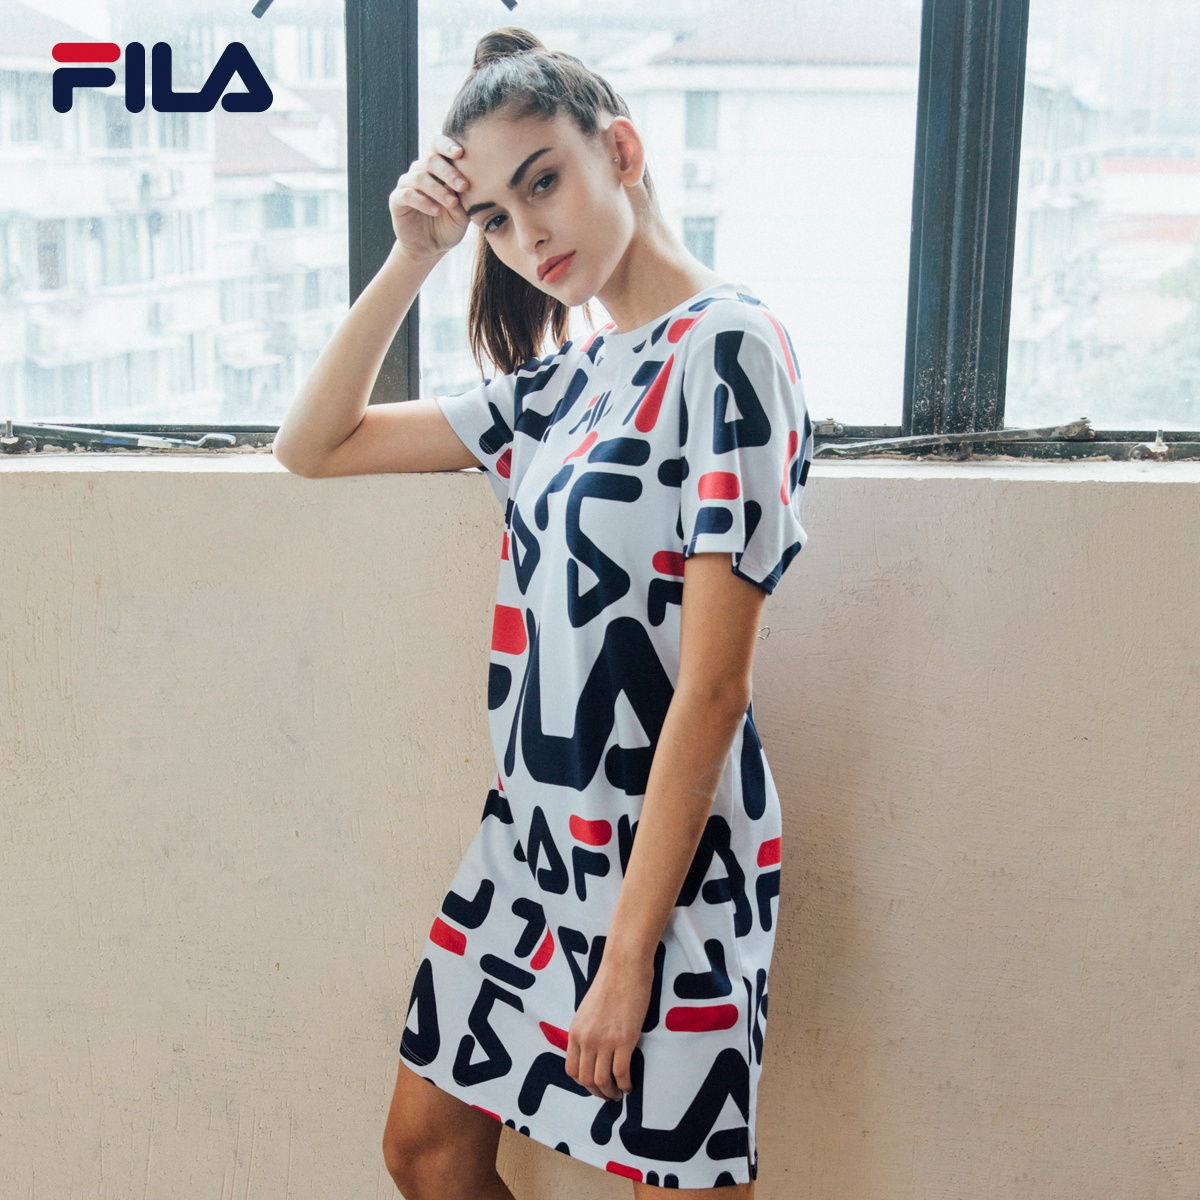 fcdf55e08751 USD 154.11  FILA Fila female dress 2019 spring sports and leisure ...